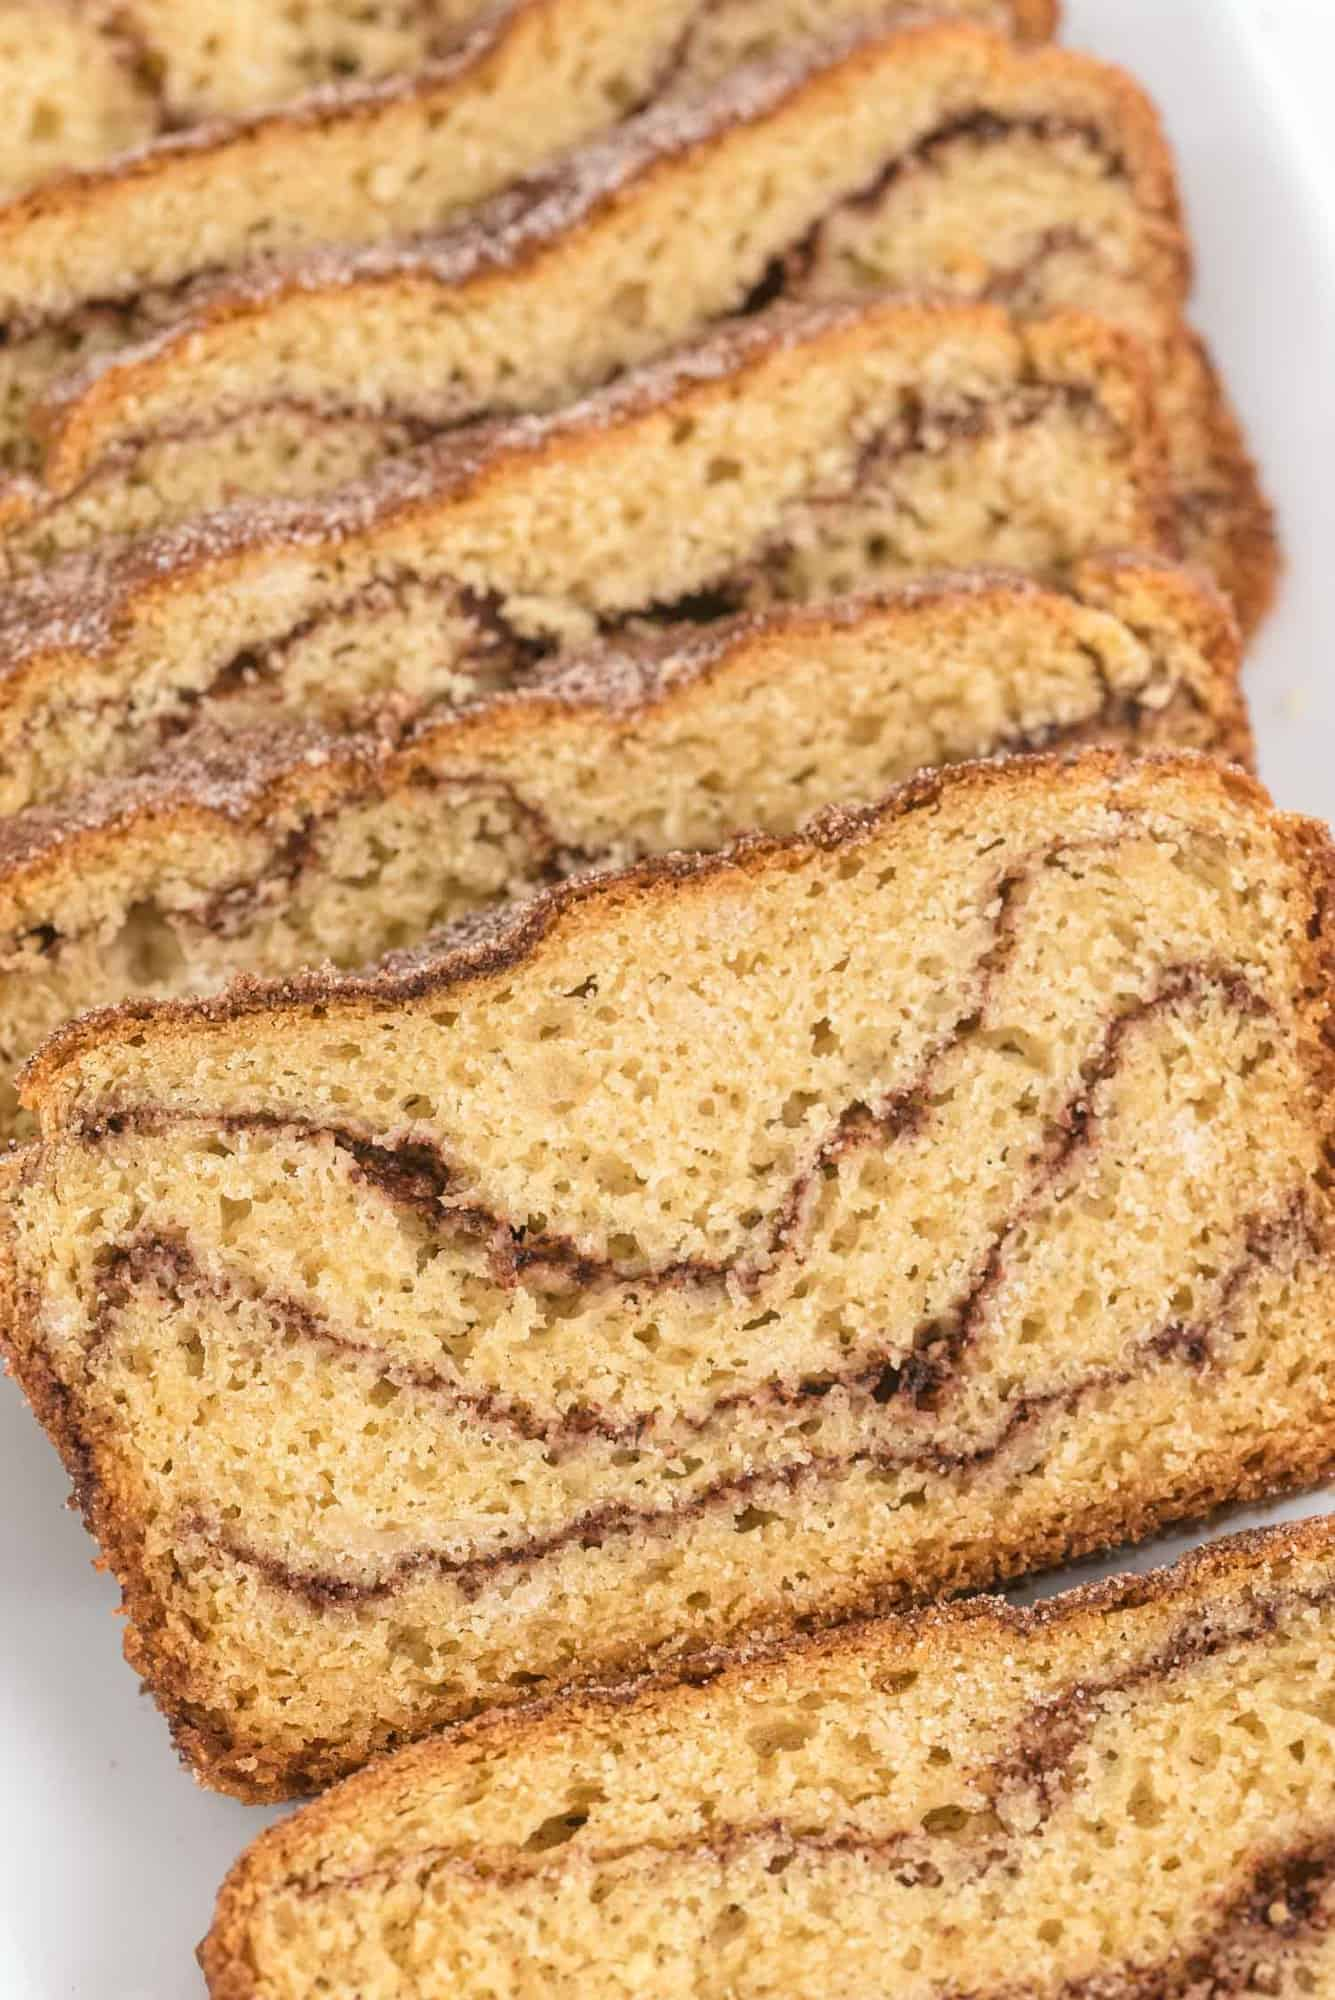 Close up of sliced cinnamon bread.